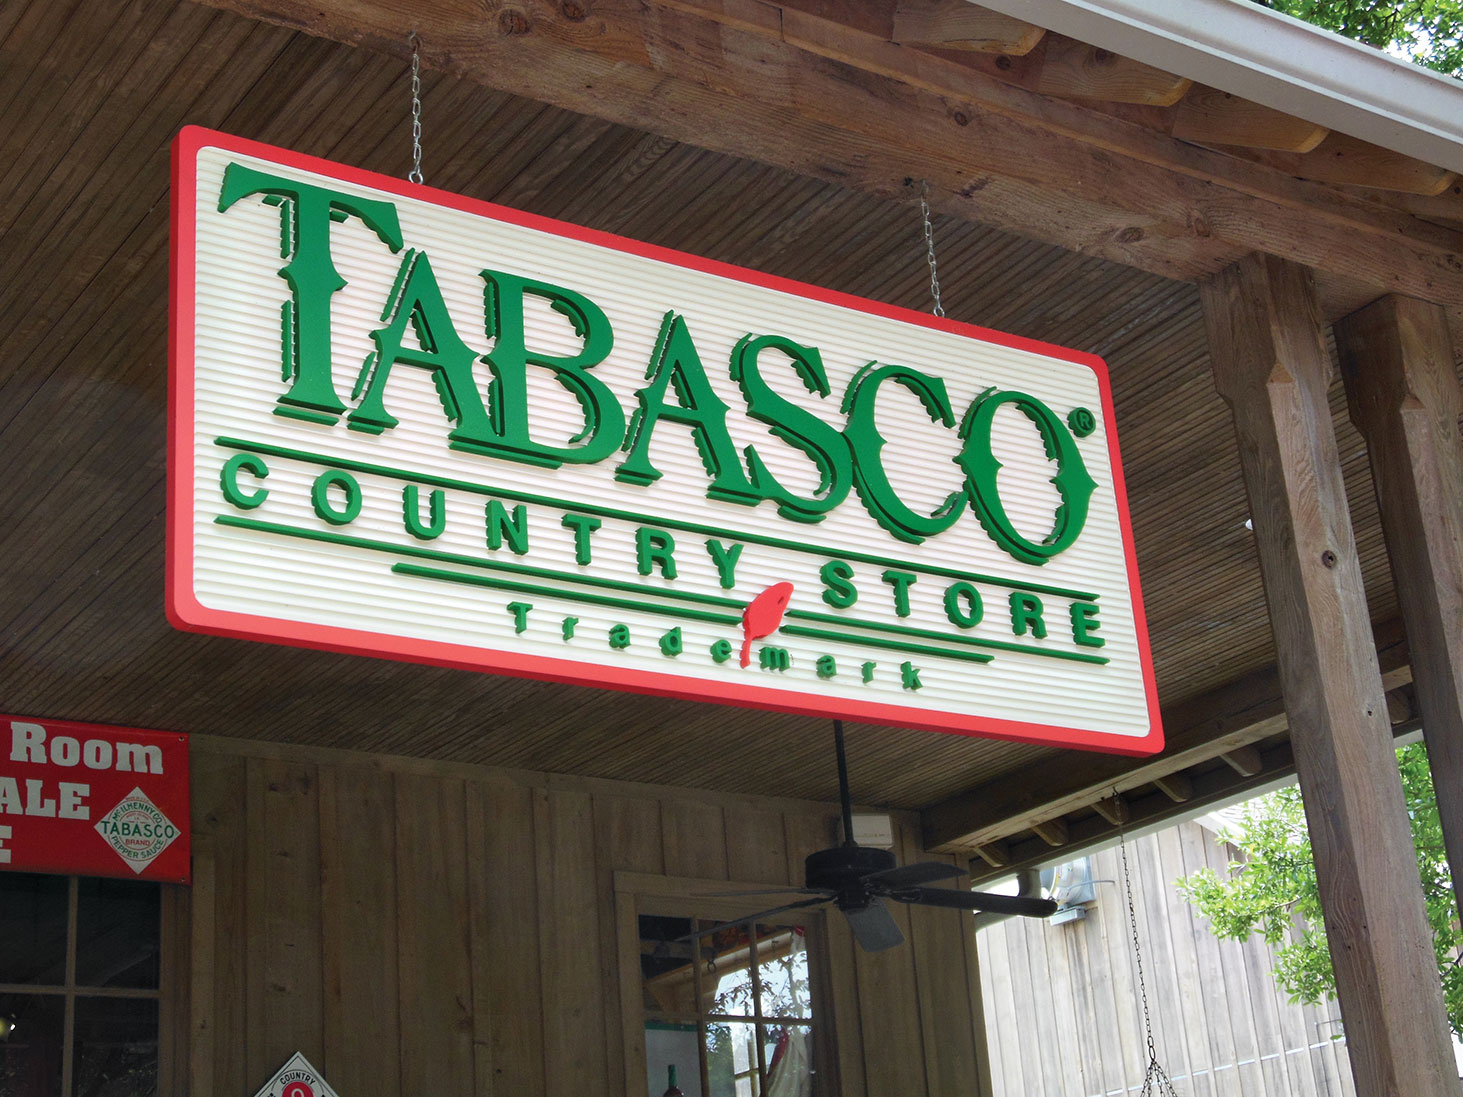 Avery Island, Louisiana is home to Tabasco Sauce.